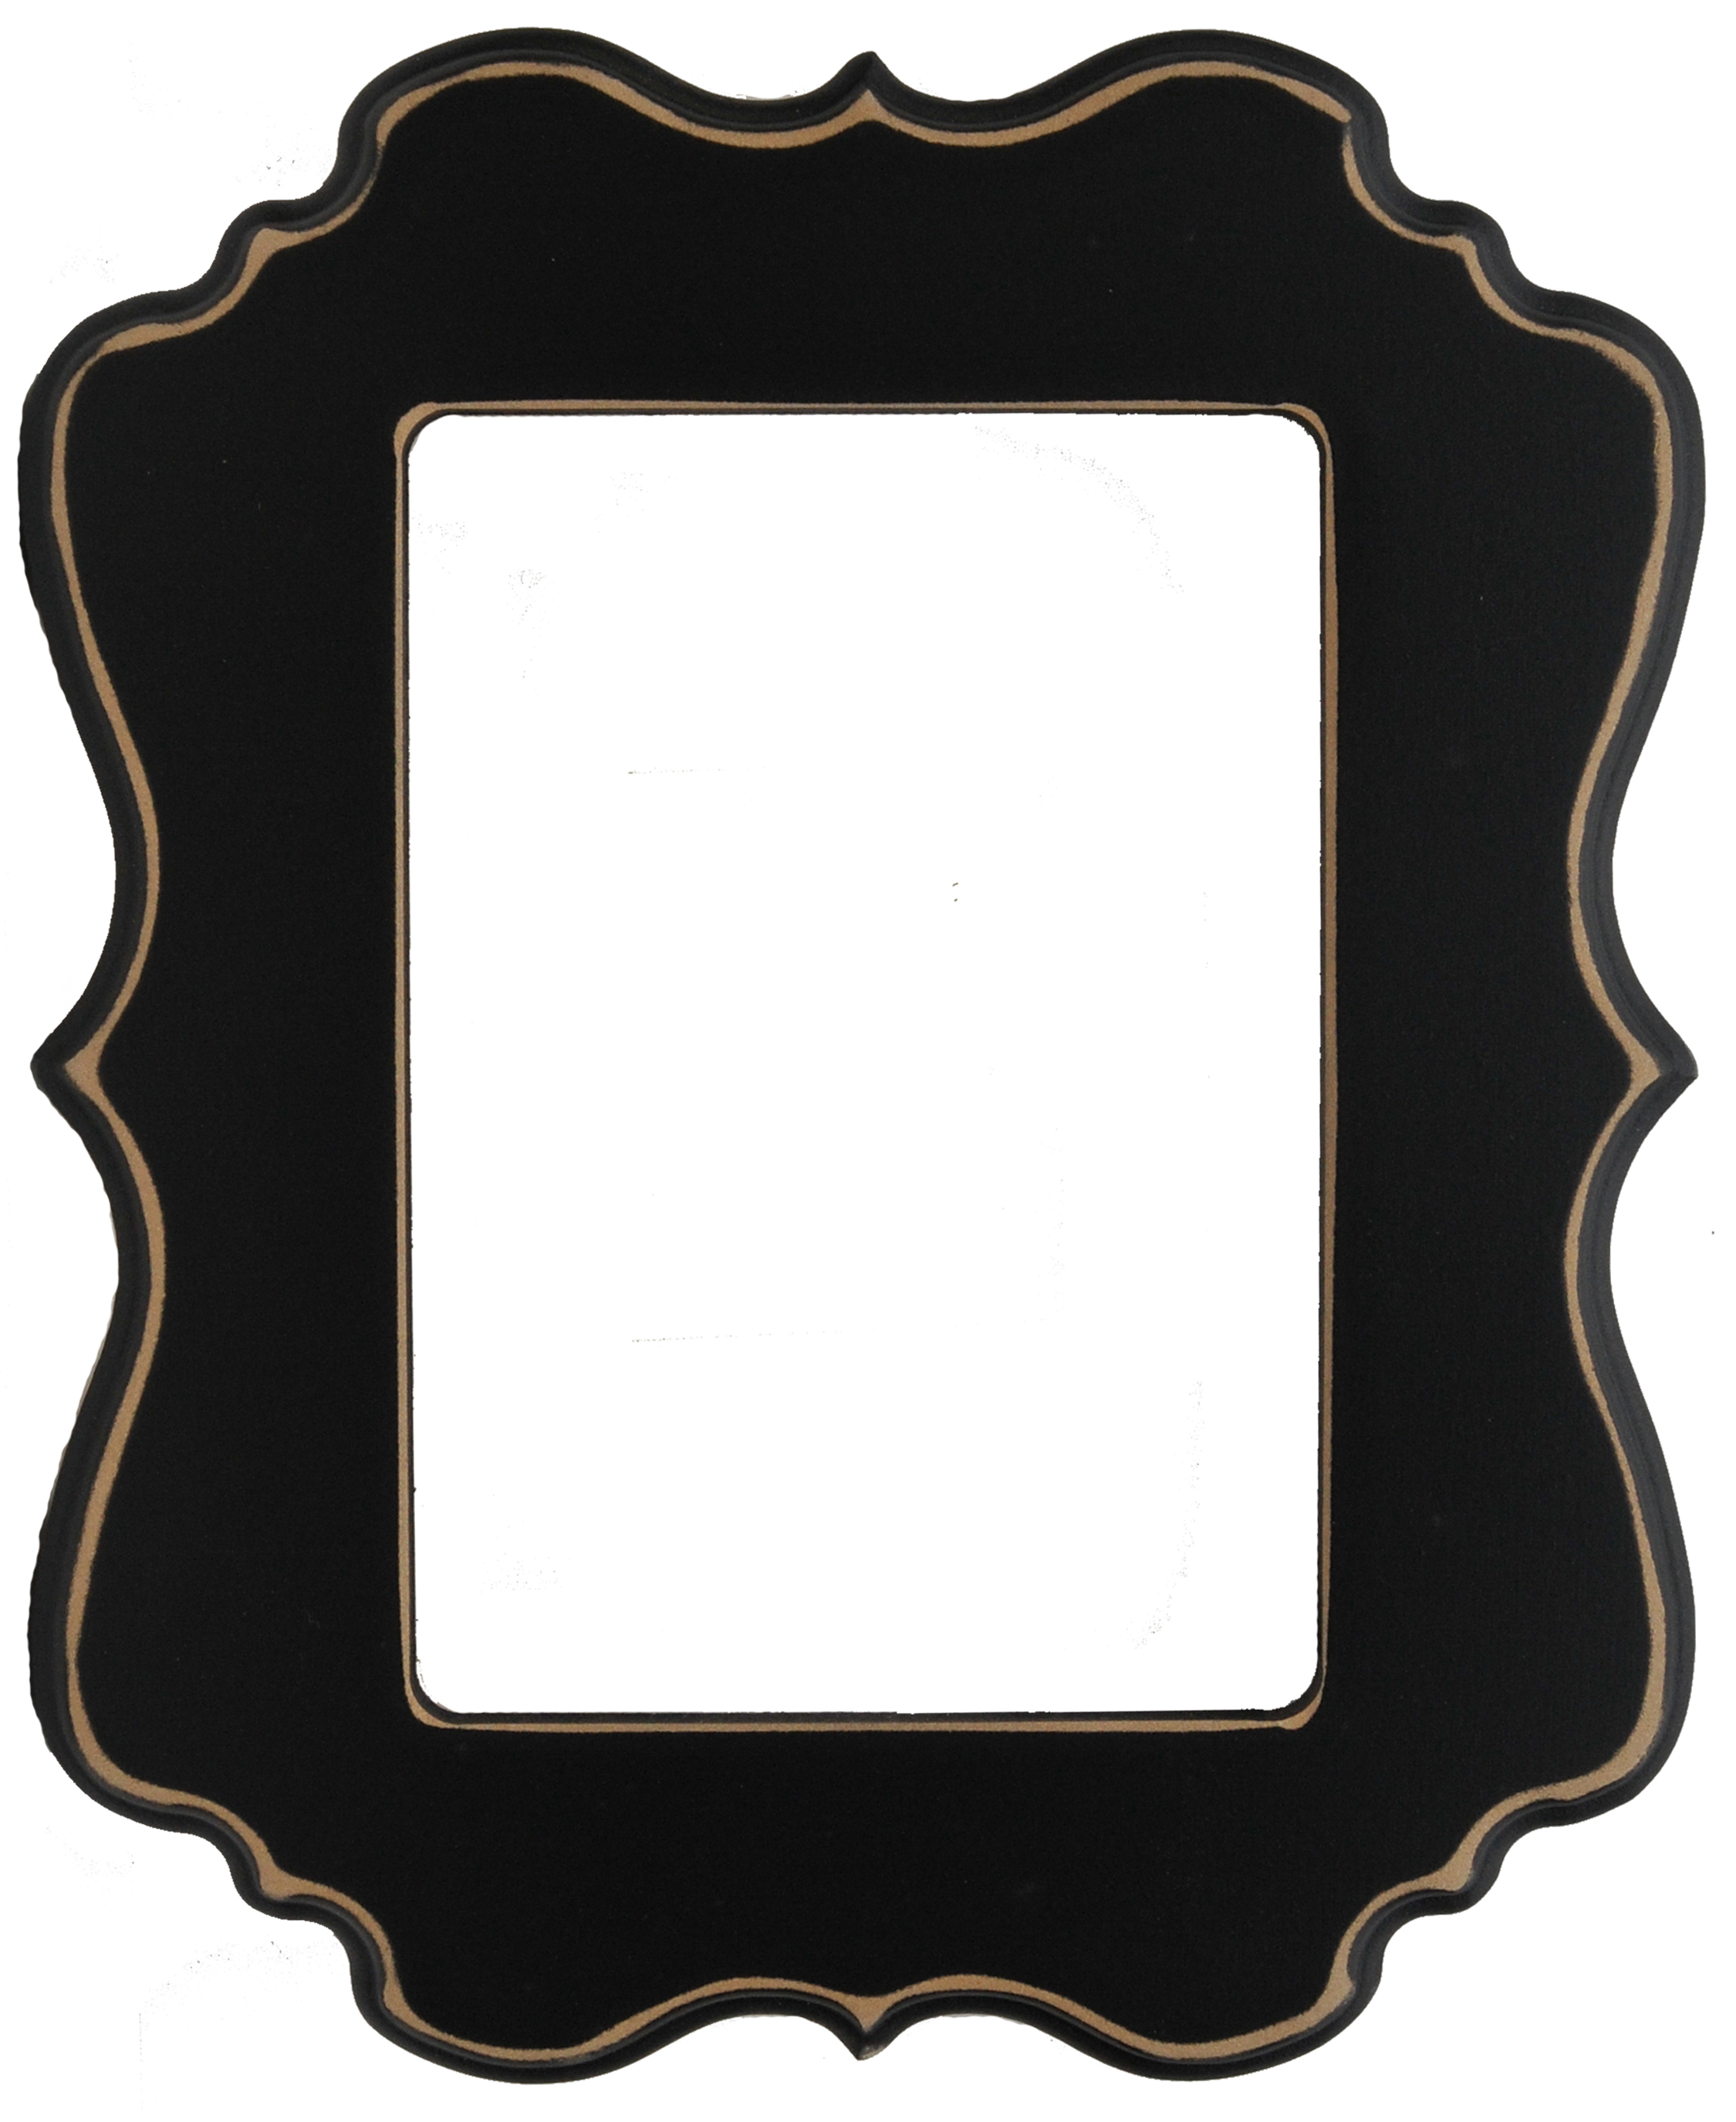 Clip Art For Picture Frames 5x7 - Best Clipart For Pro User :* •